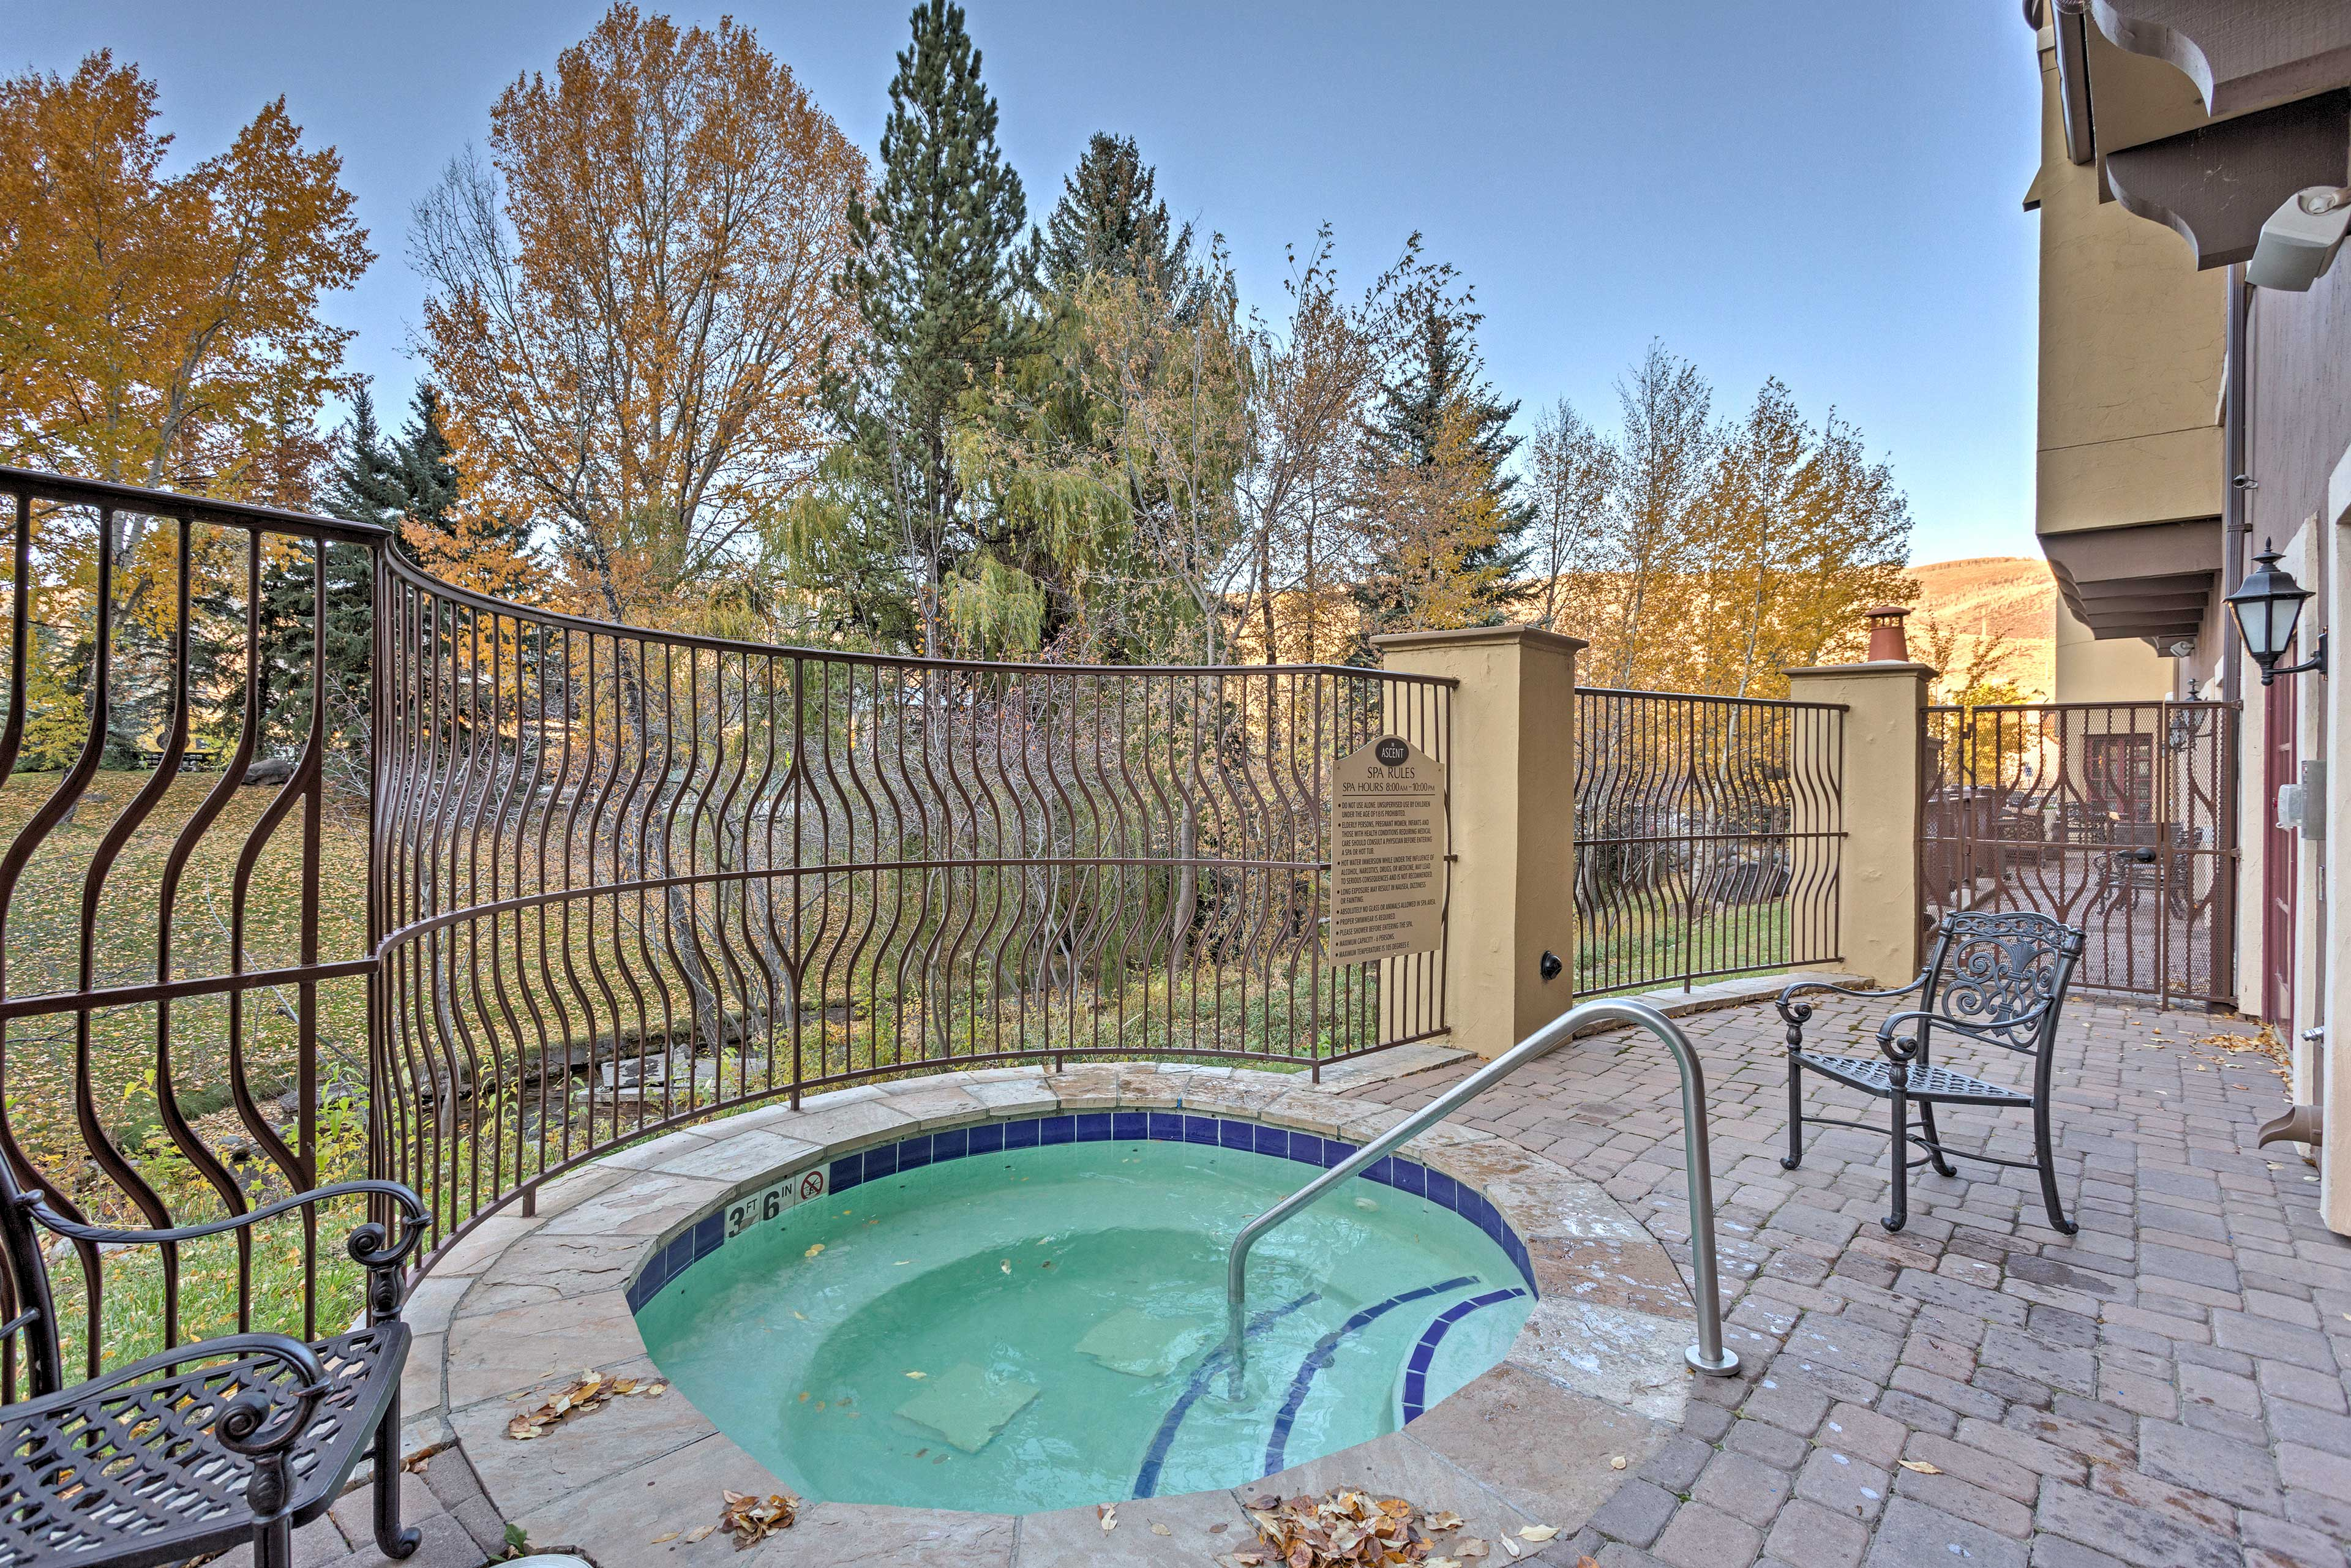 Soak your tired muscles in the community outdoor hot tub.